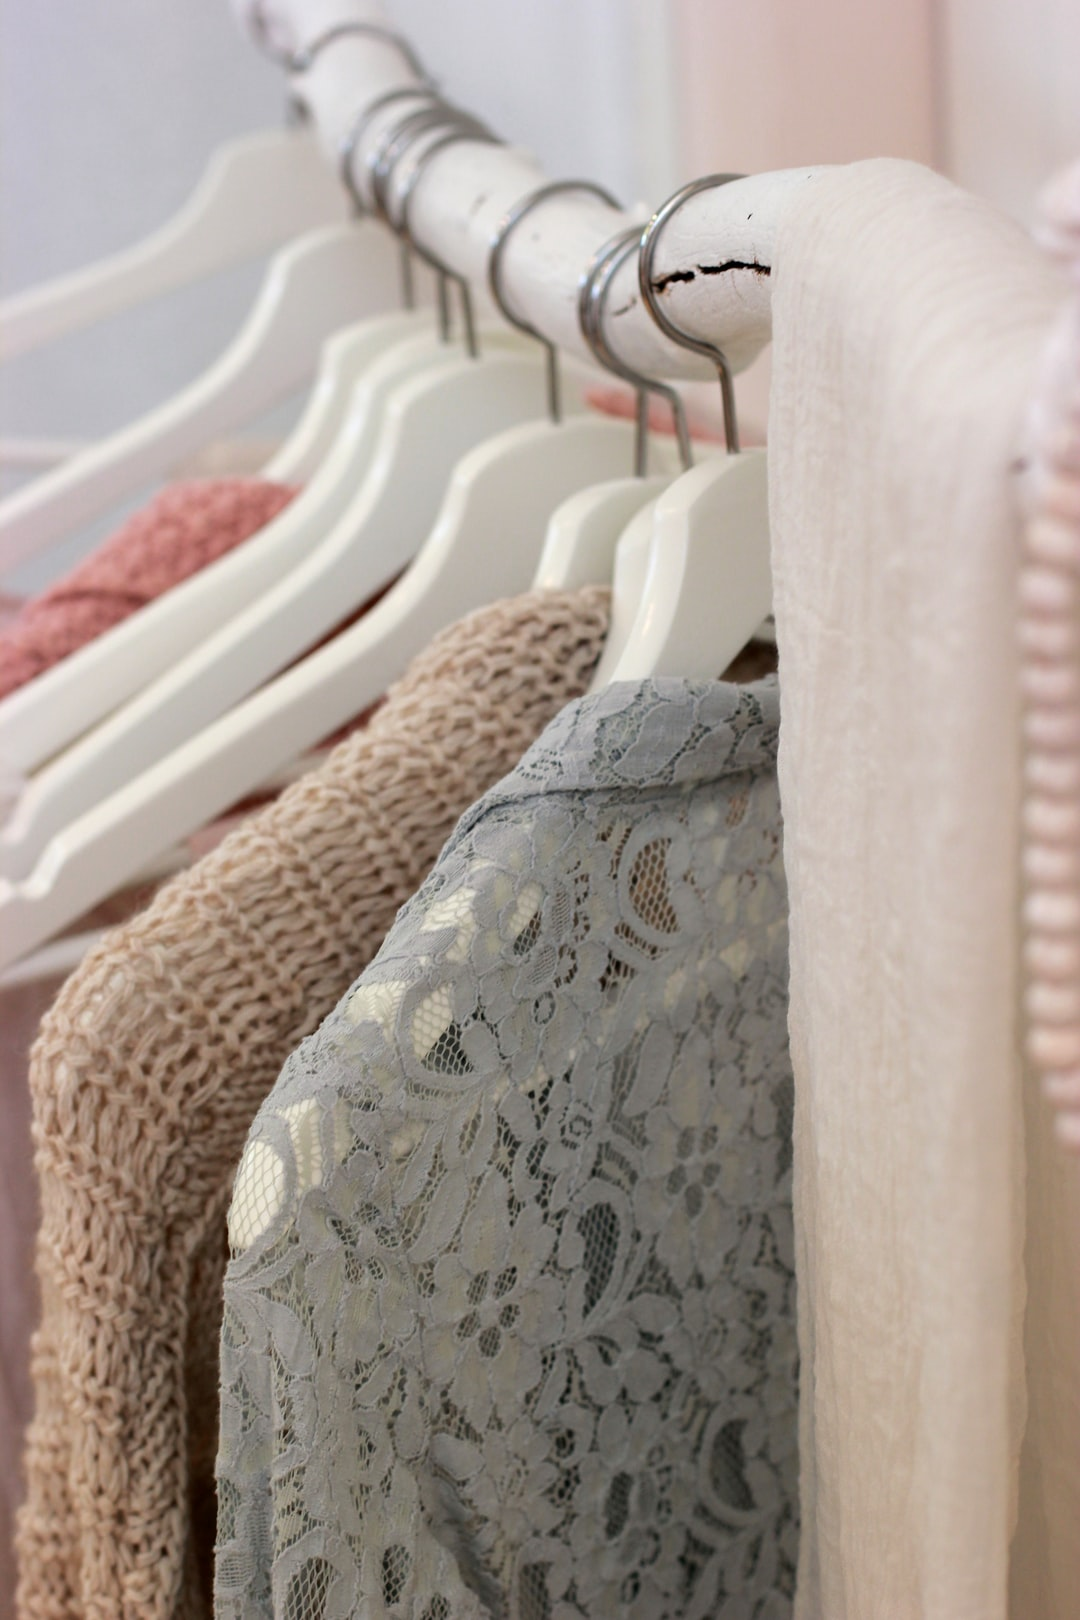 6 Factors to Consider When Choosing a Dry Cleaning Service